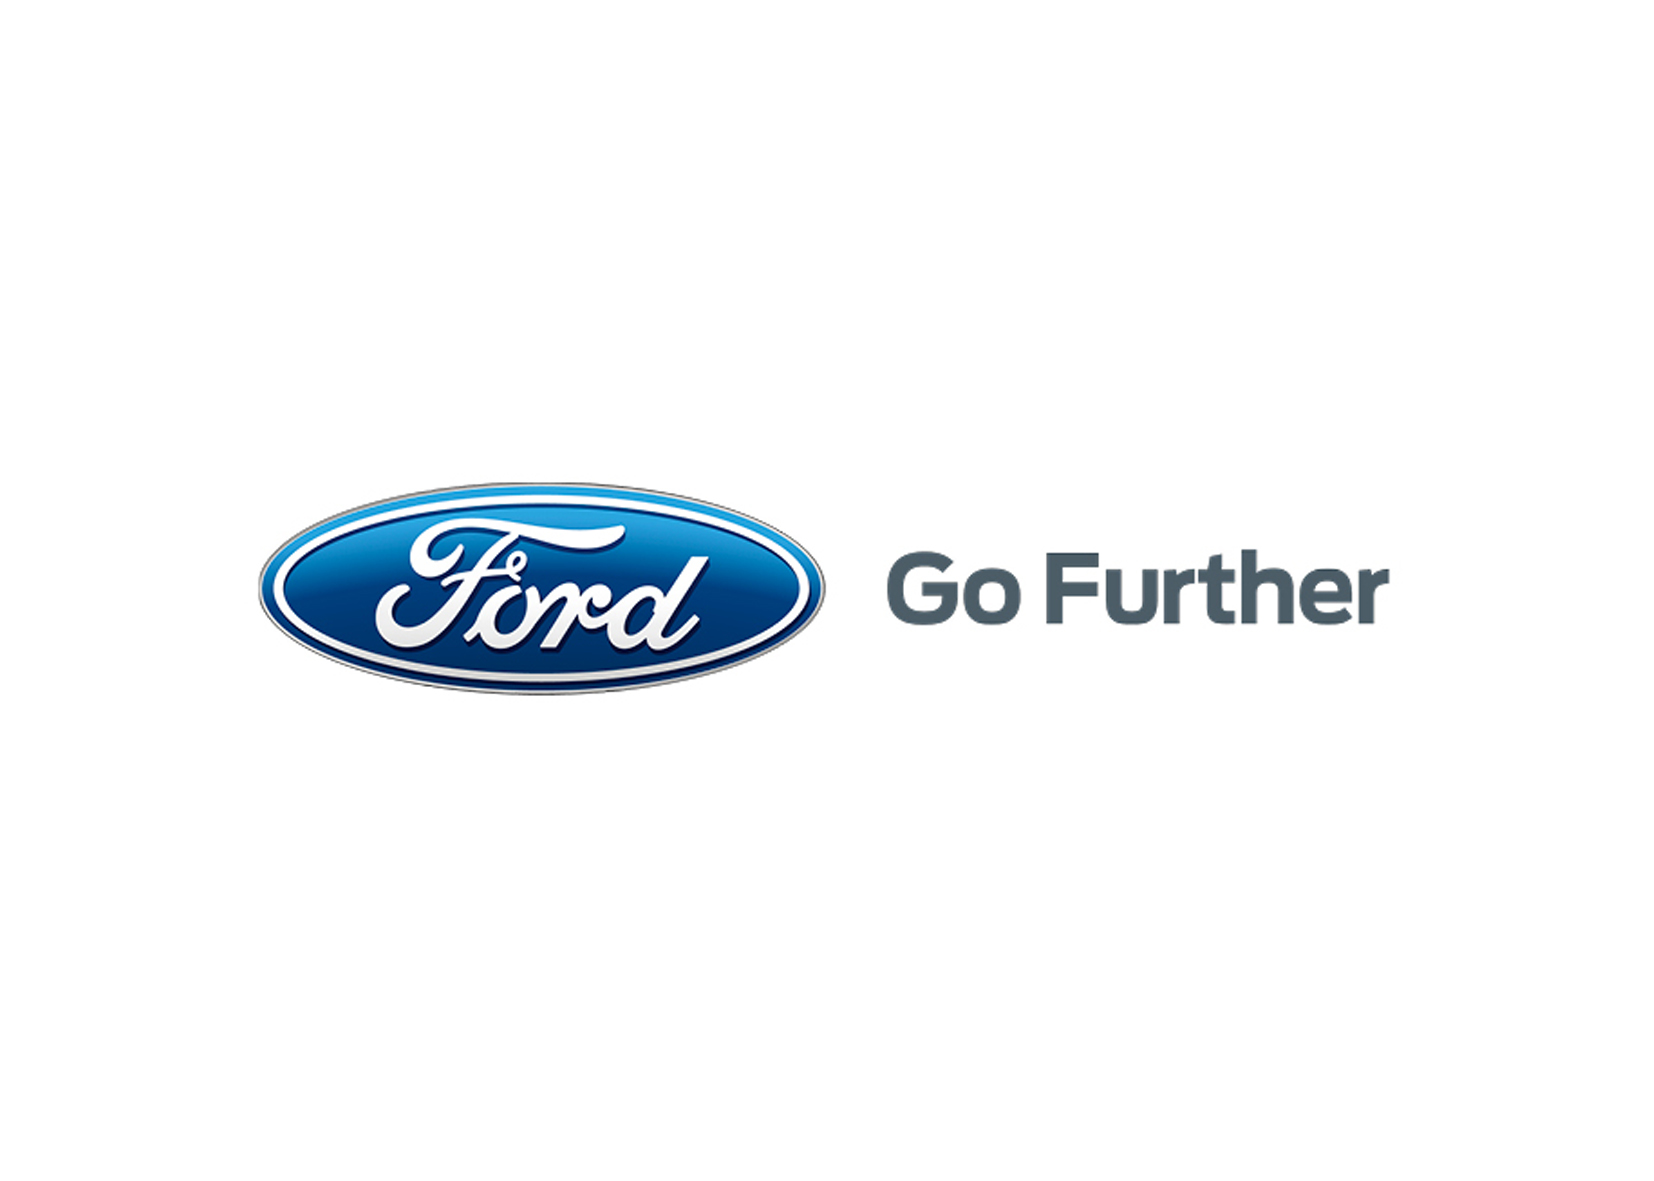 highway brands_0007_ford.jpg